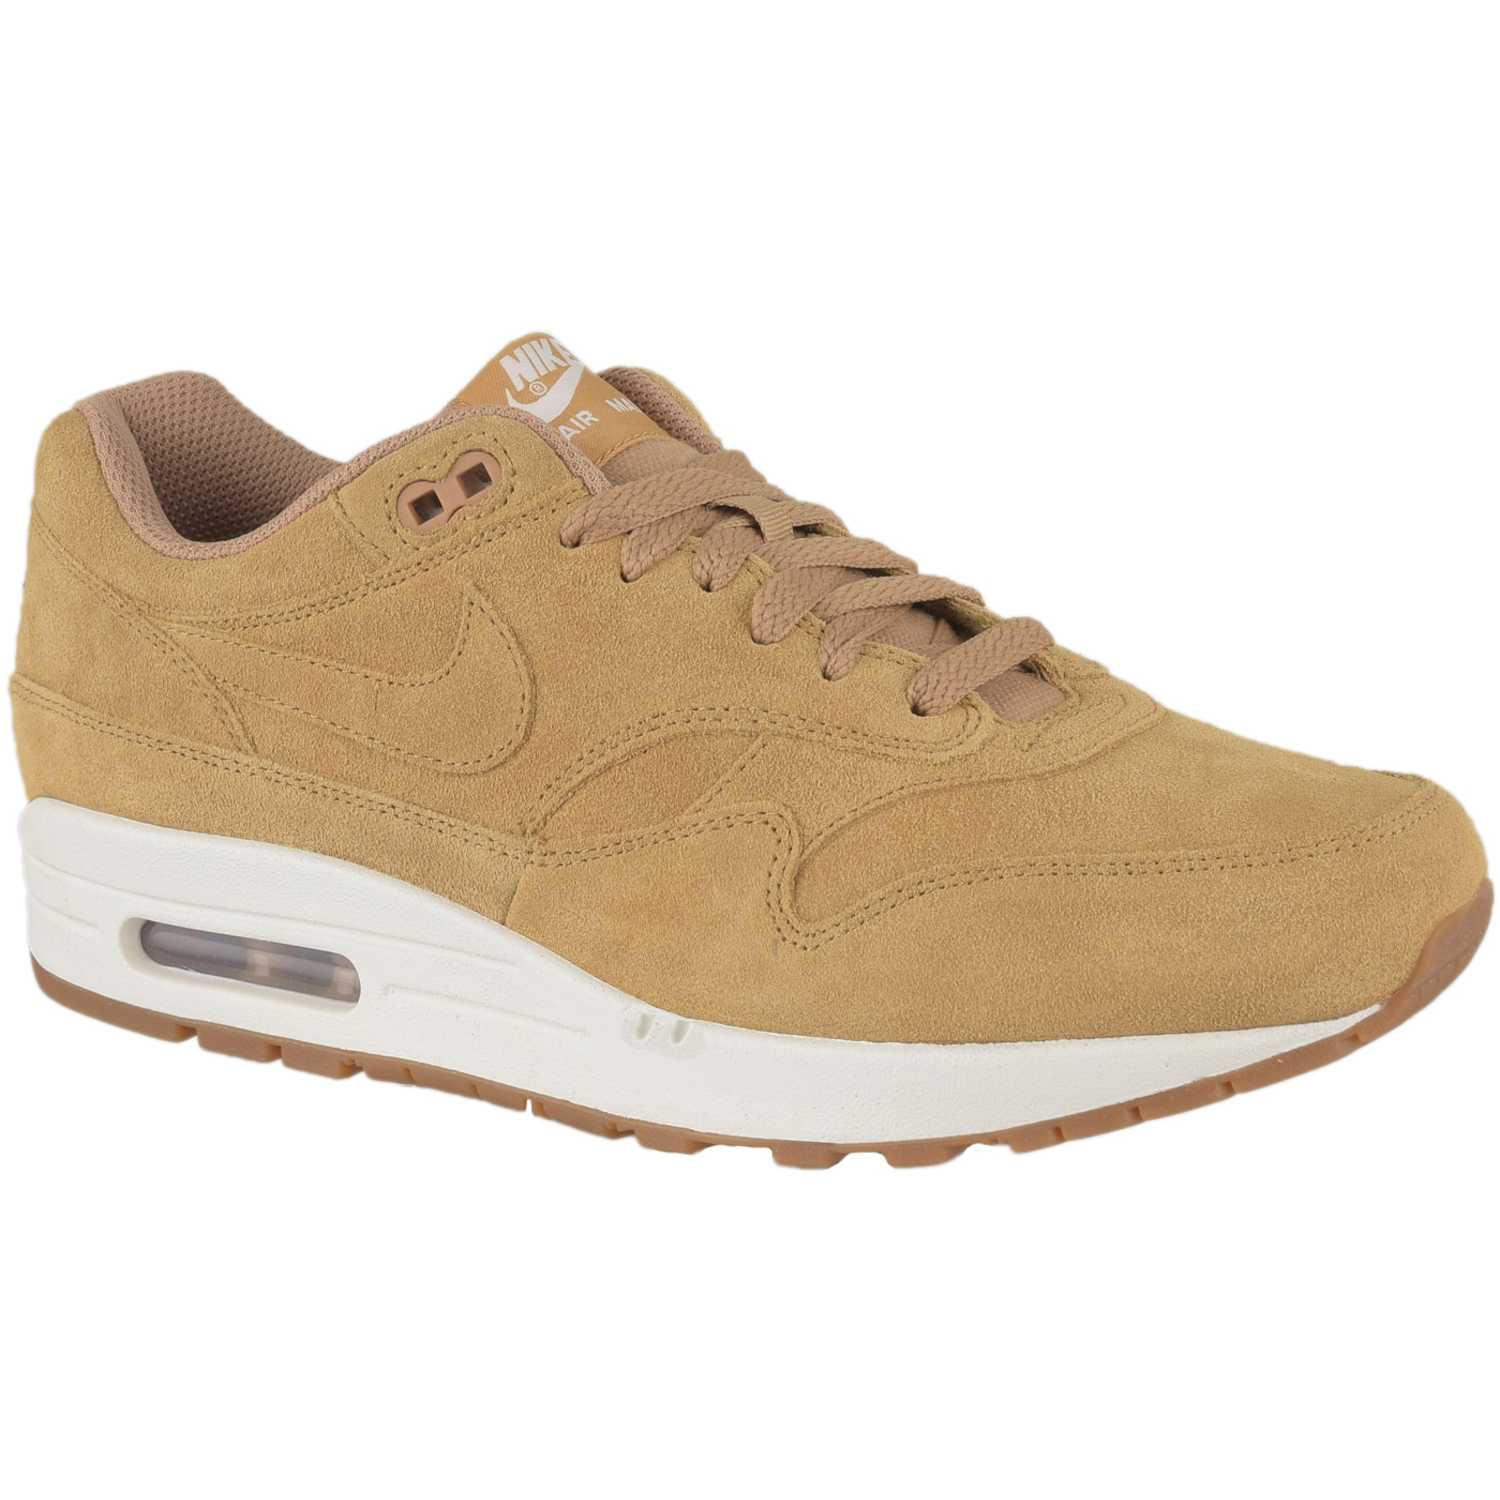 Nike nk air max 1 premium Camel Walking